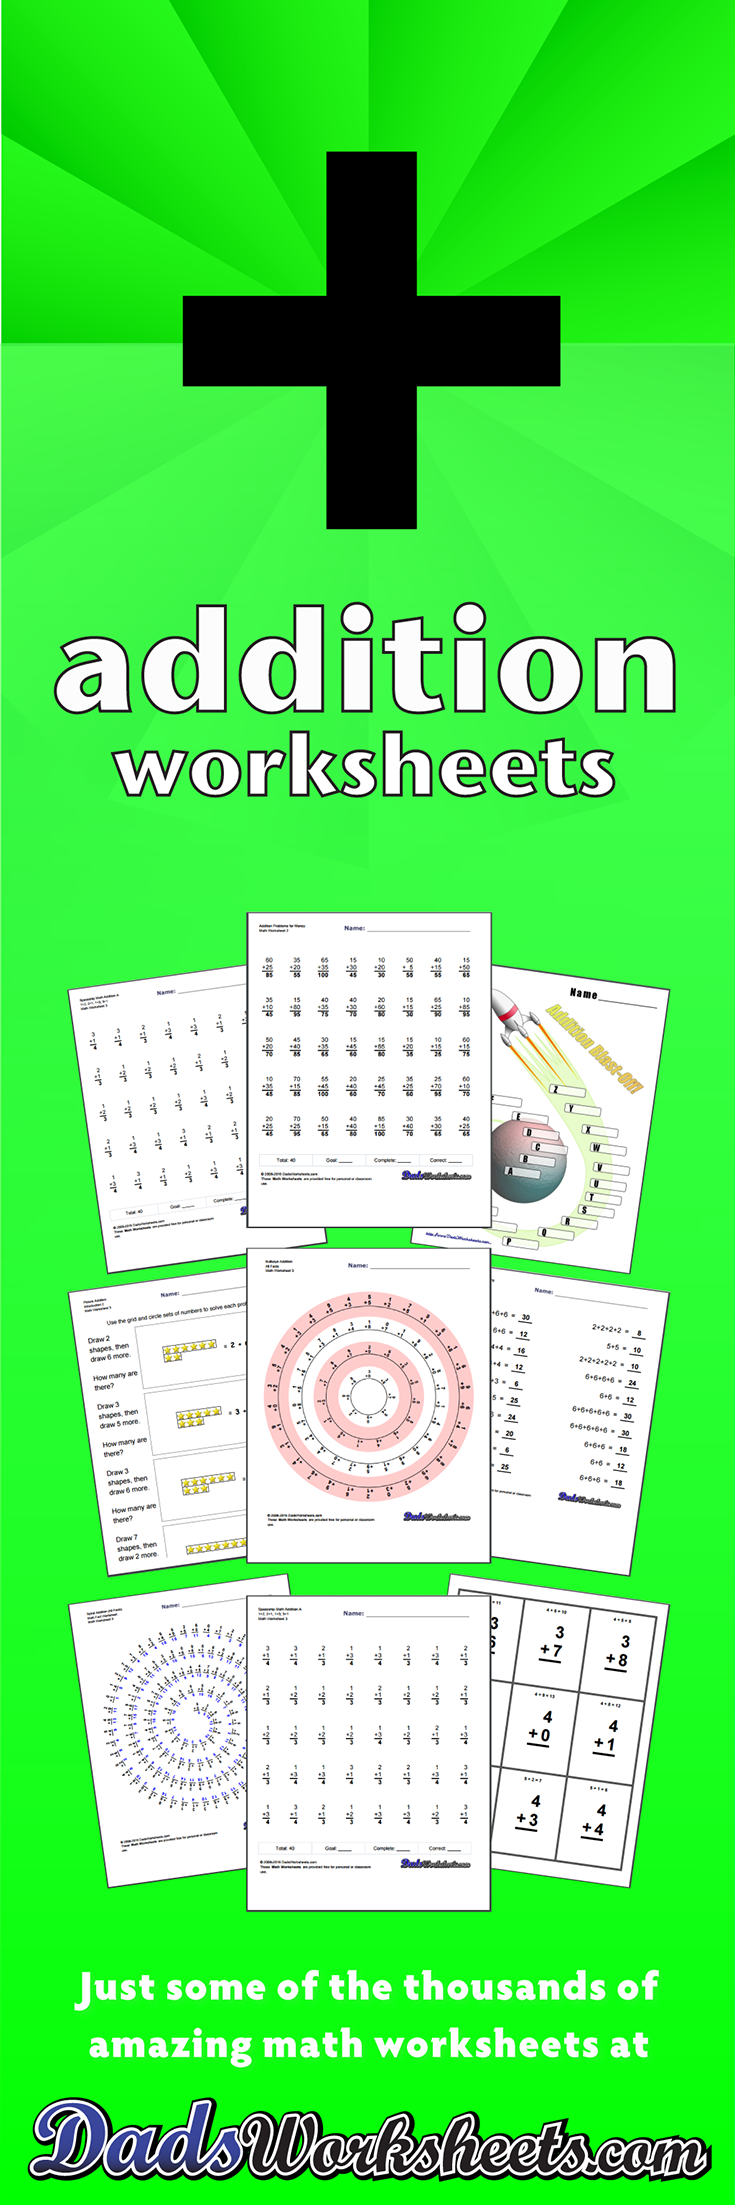 worksheet Dads Math Worksheets 396 addition worksheets for you to print right now worksheets